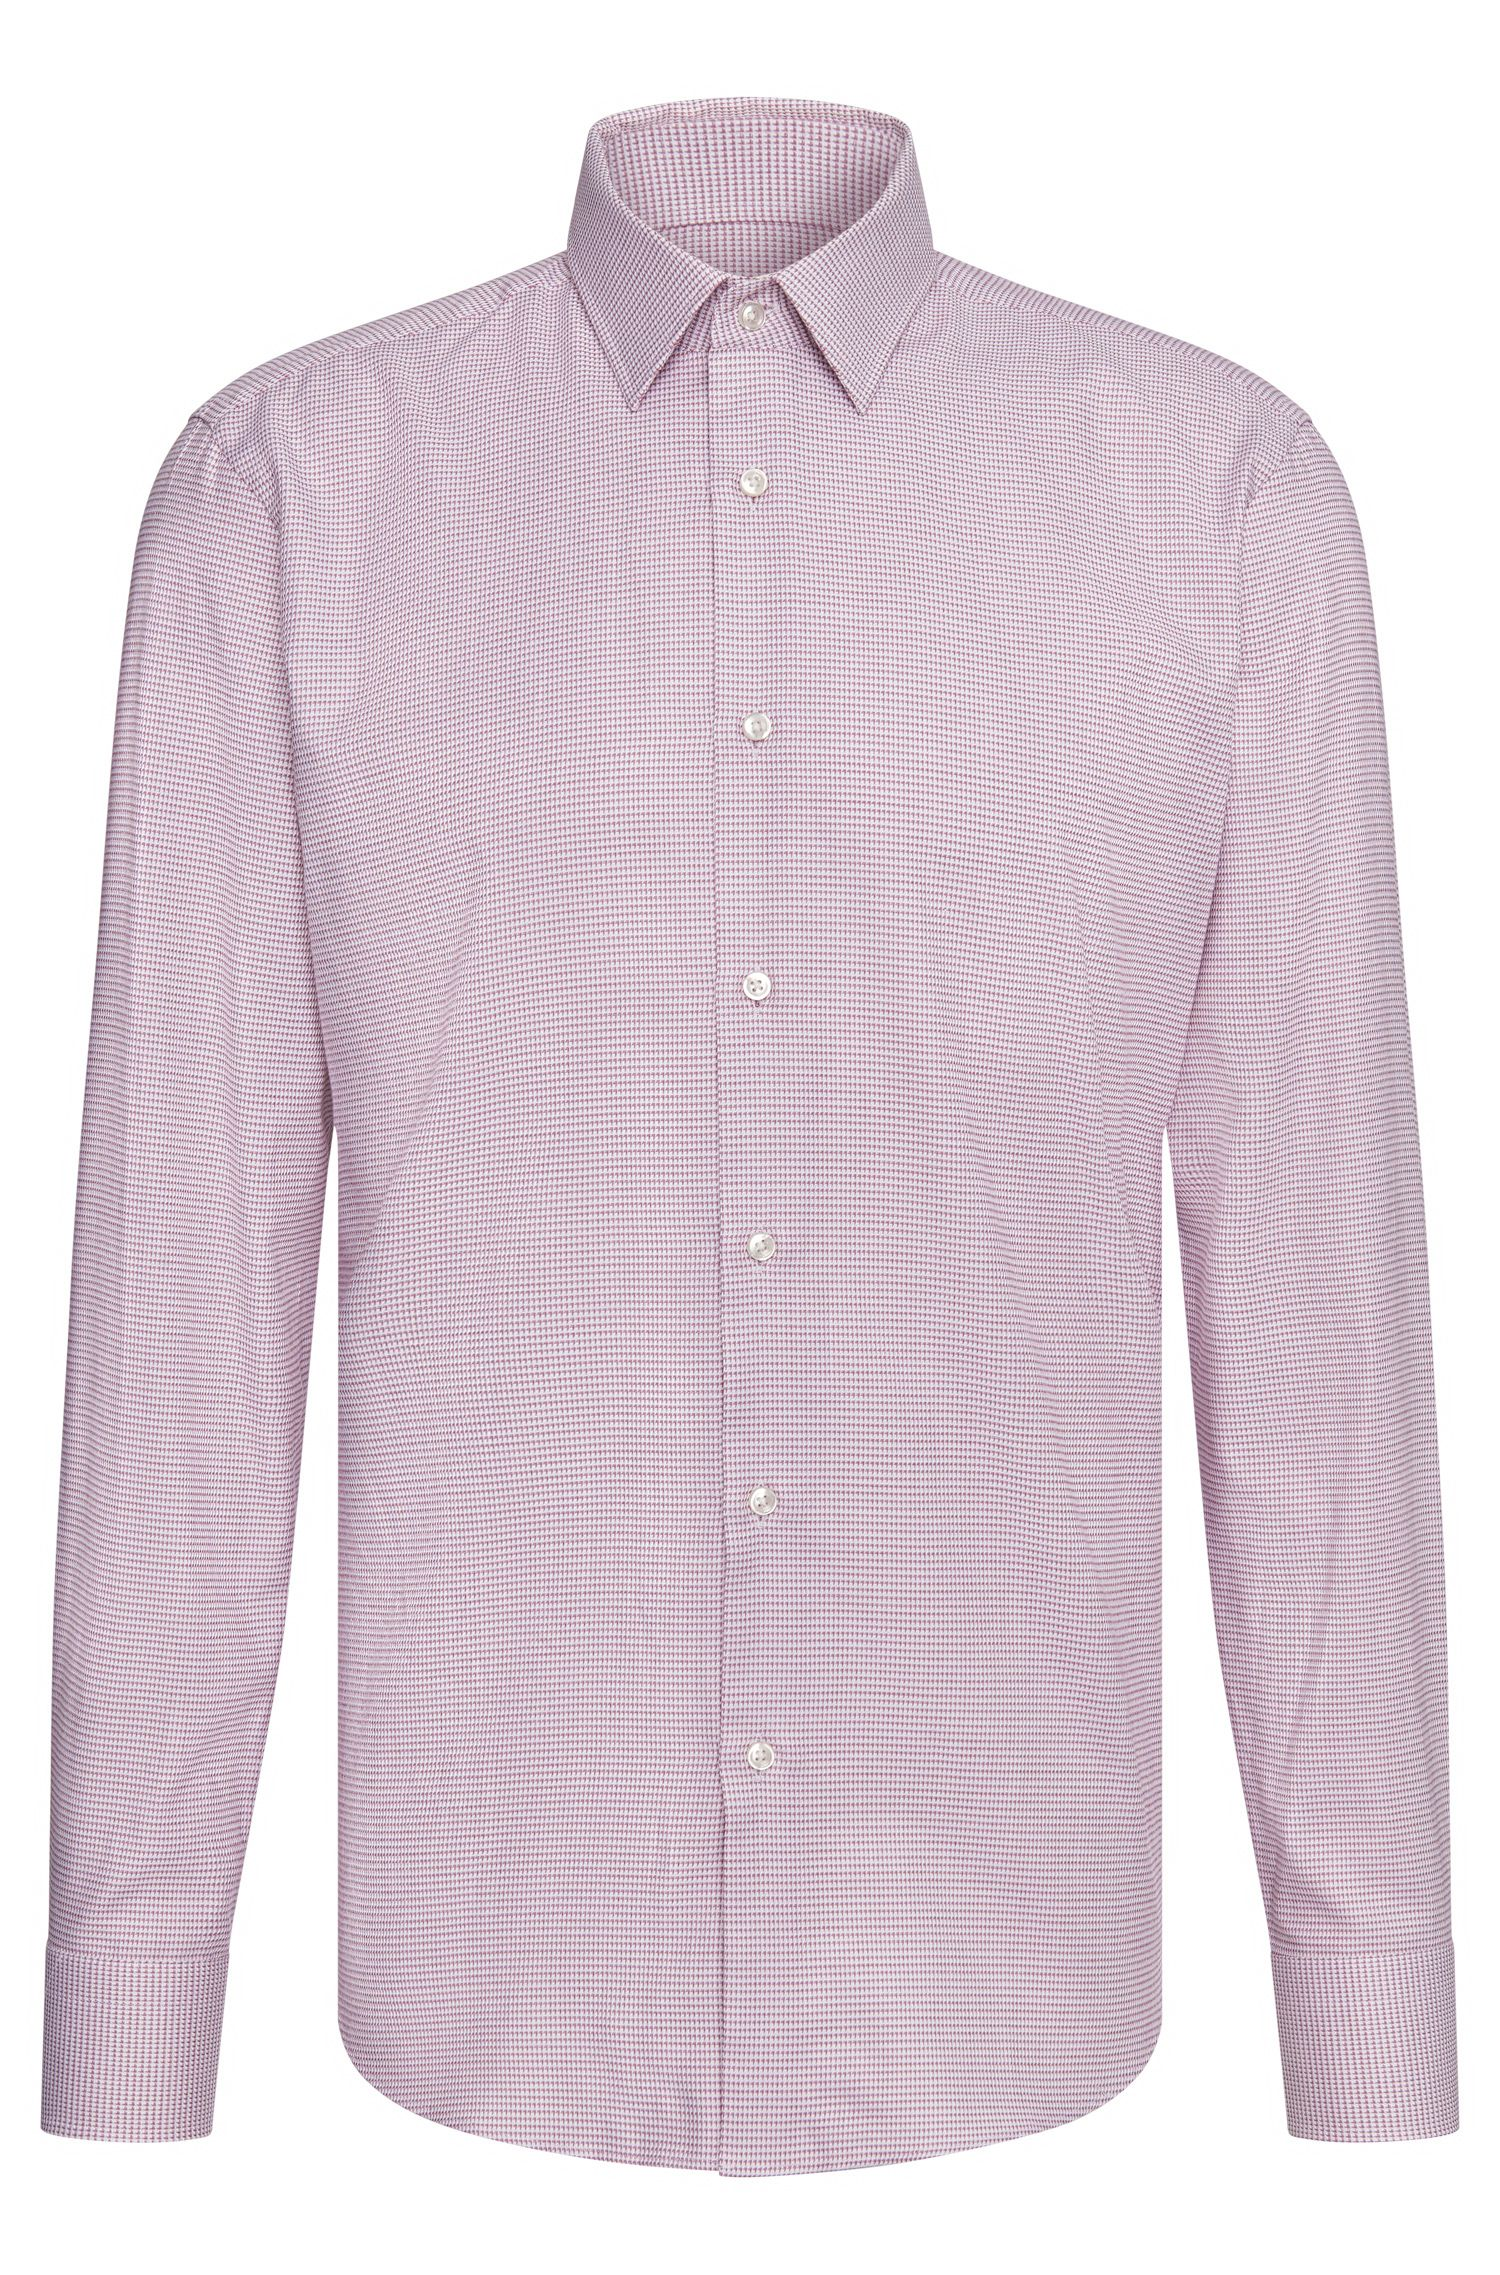 All-over patterned regular-fit shirt in cotton: 'Enzo'